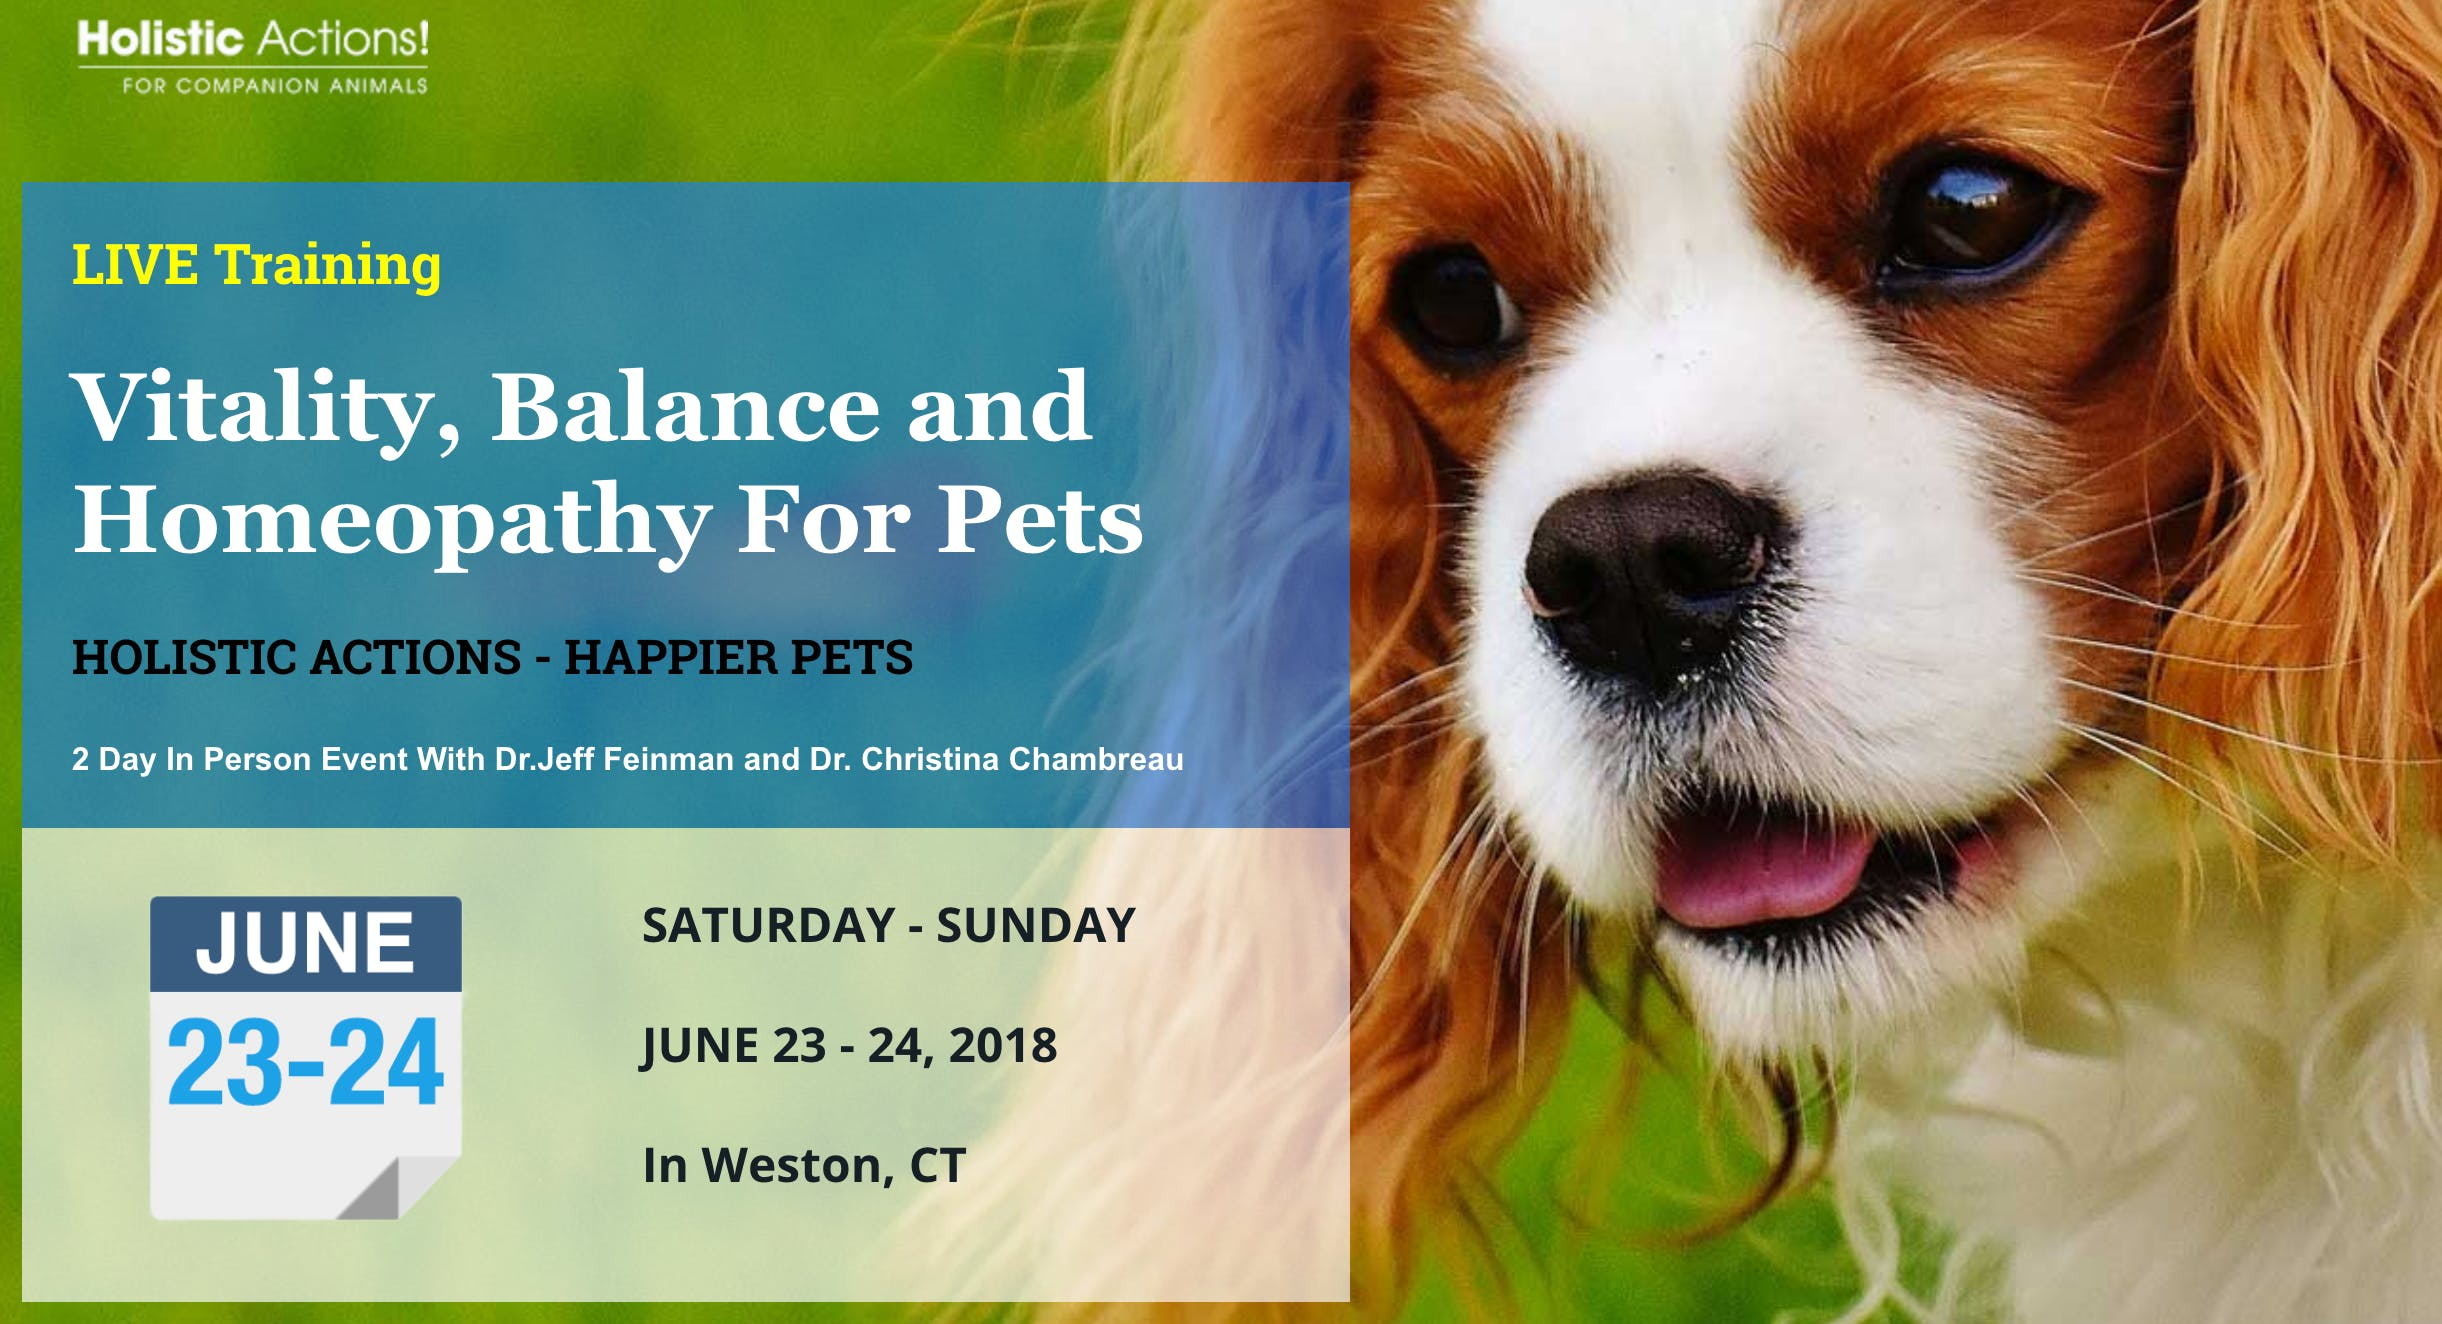 Vitality, Balance and Homeopathy For Pets